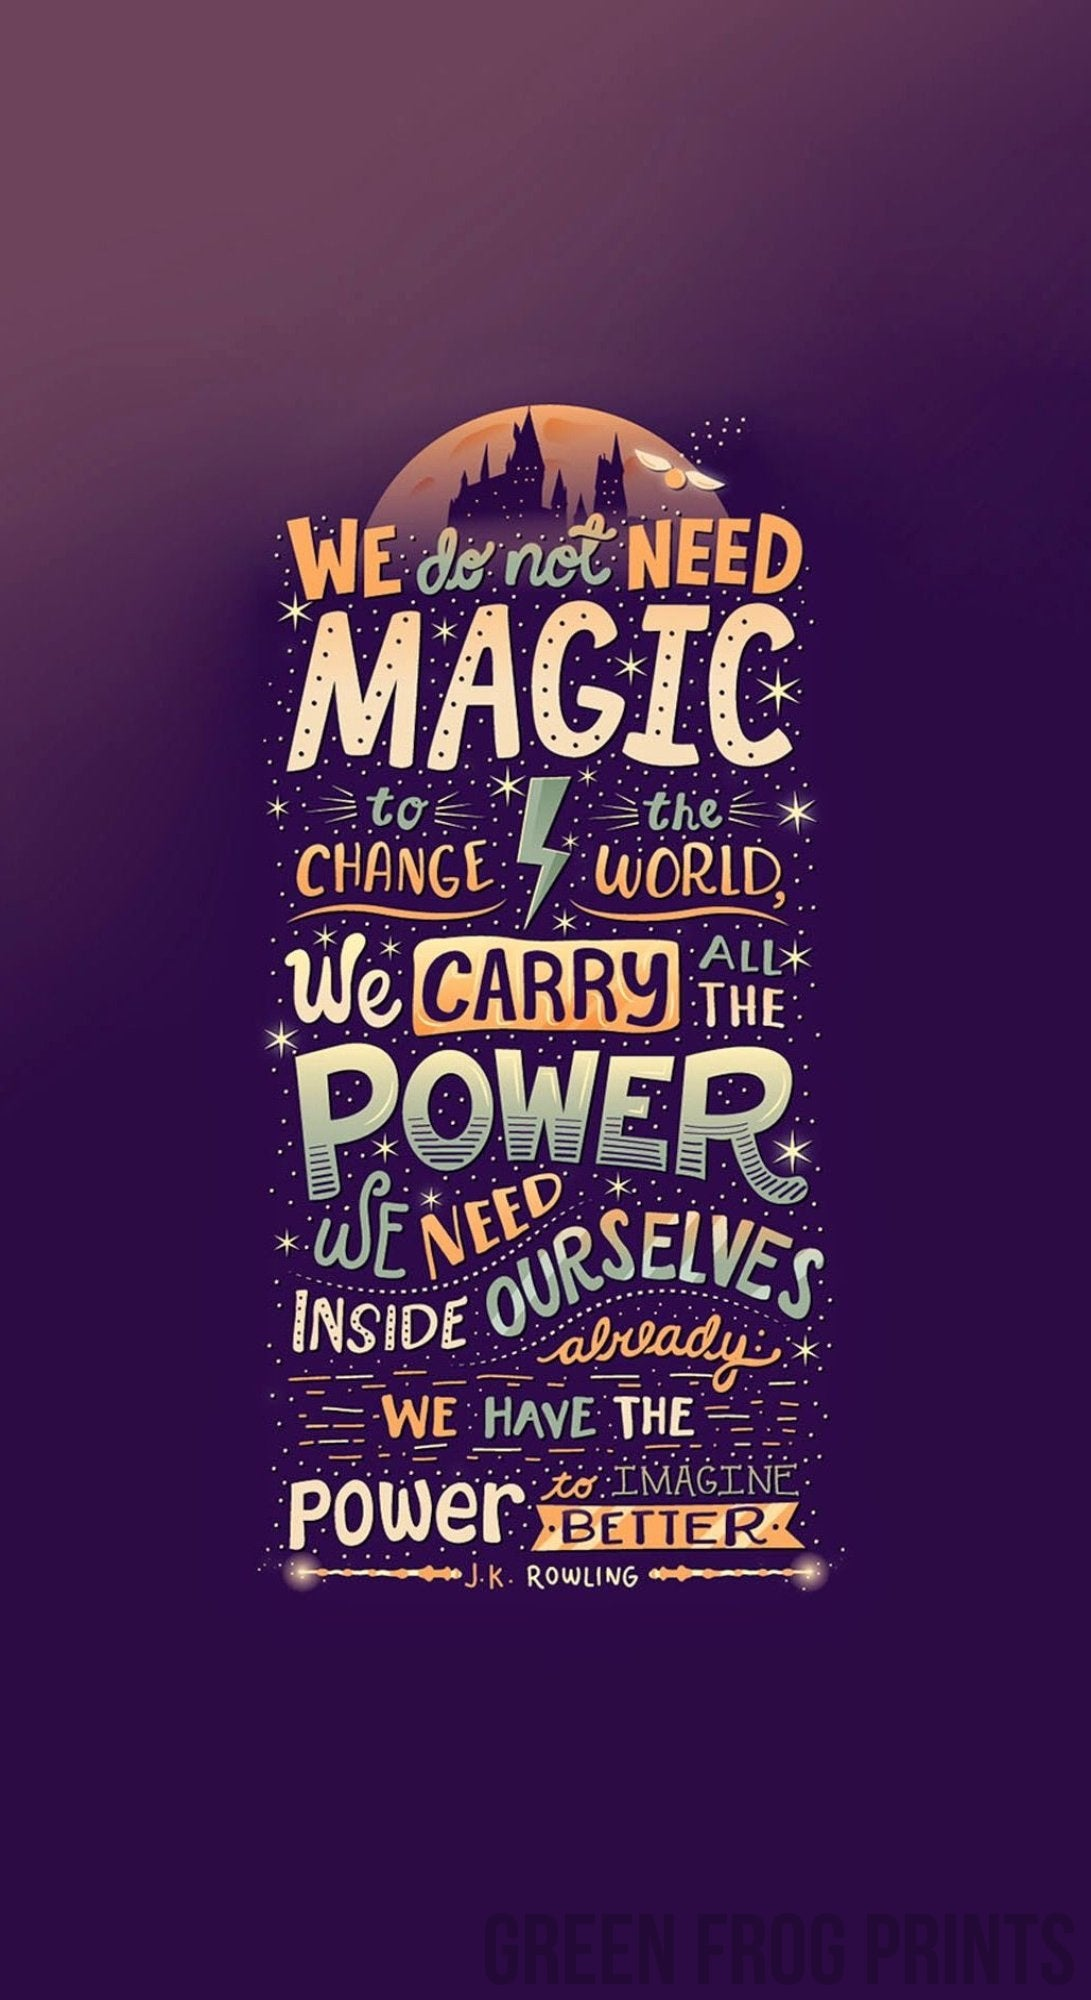 image about Printable Harry Potter Quotes named We Deliver All The Electricity Harry Potter Quotation Poster Print Reward Designs for JK Rowling Potter Followers